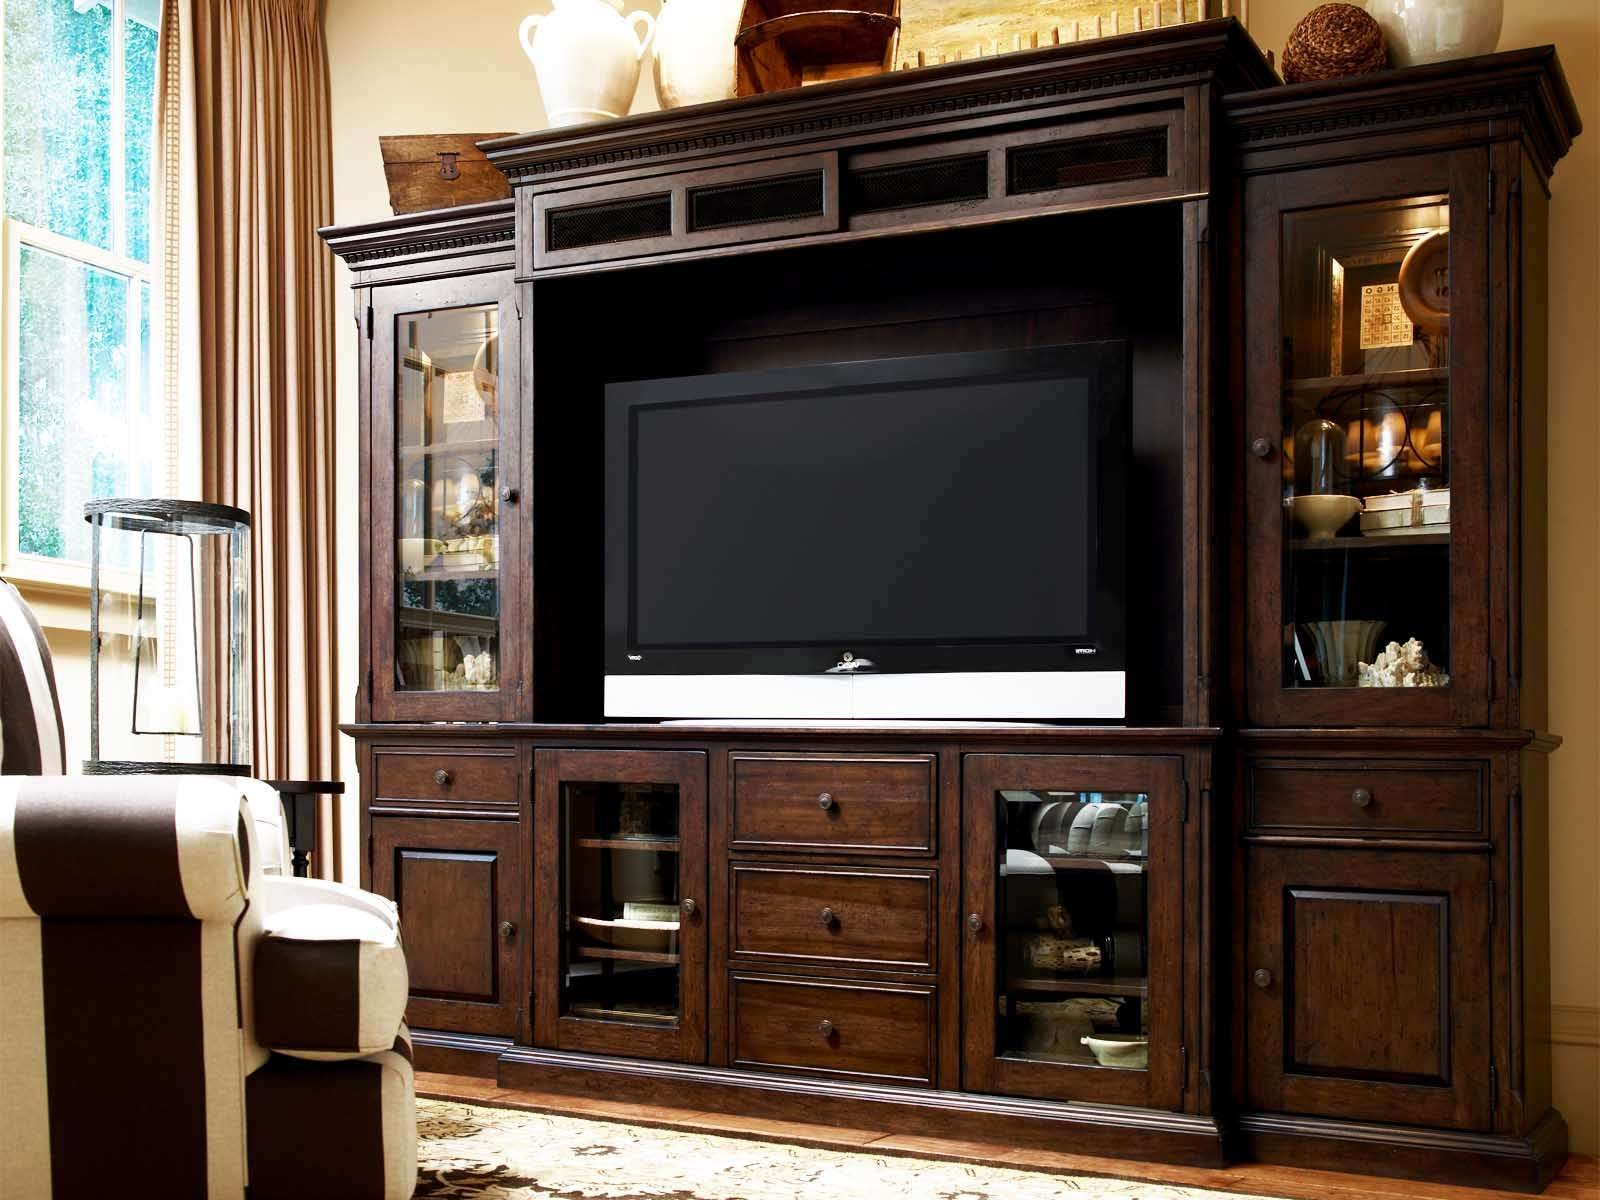 Tv Cabinets With Glass Doors Choice Image – Doors Design Ideas Throughout Glass Tv Cabinets With Doors (View 18 of 20)